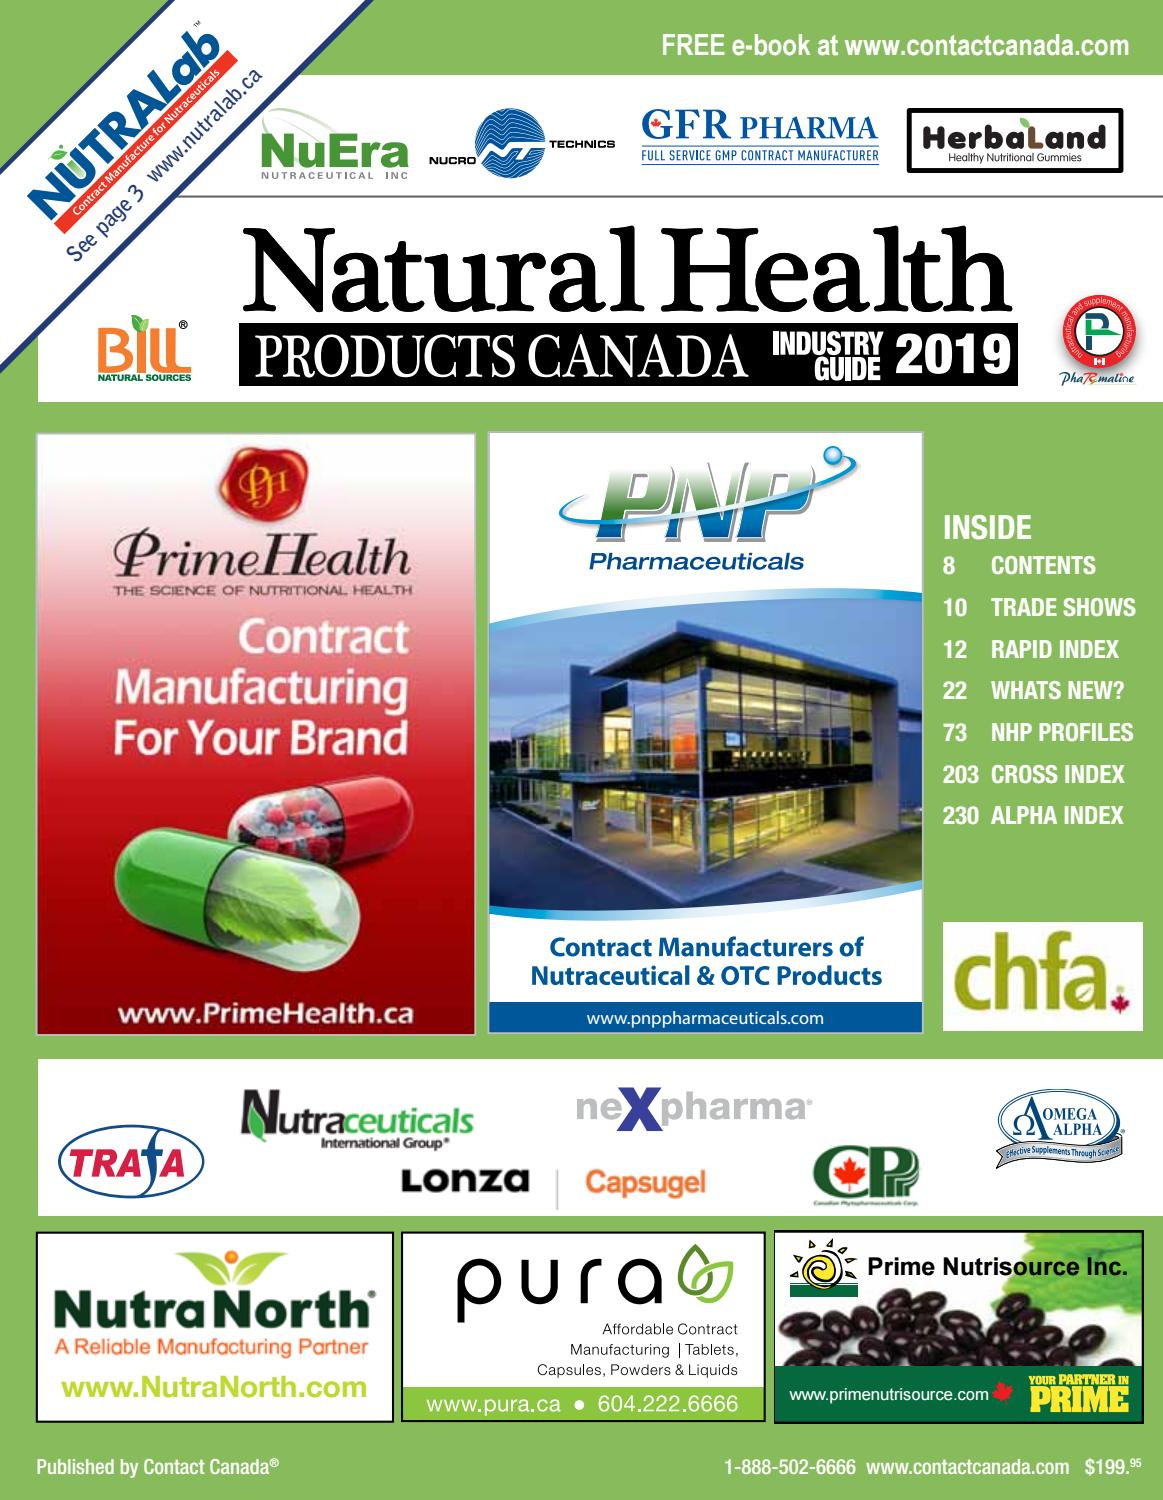 Natural Health Products Canada by Contact Canada - issuu